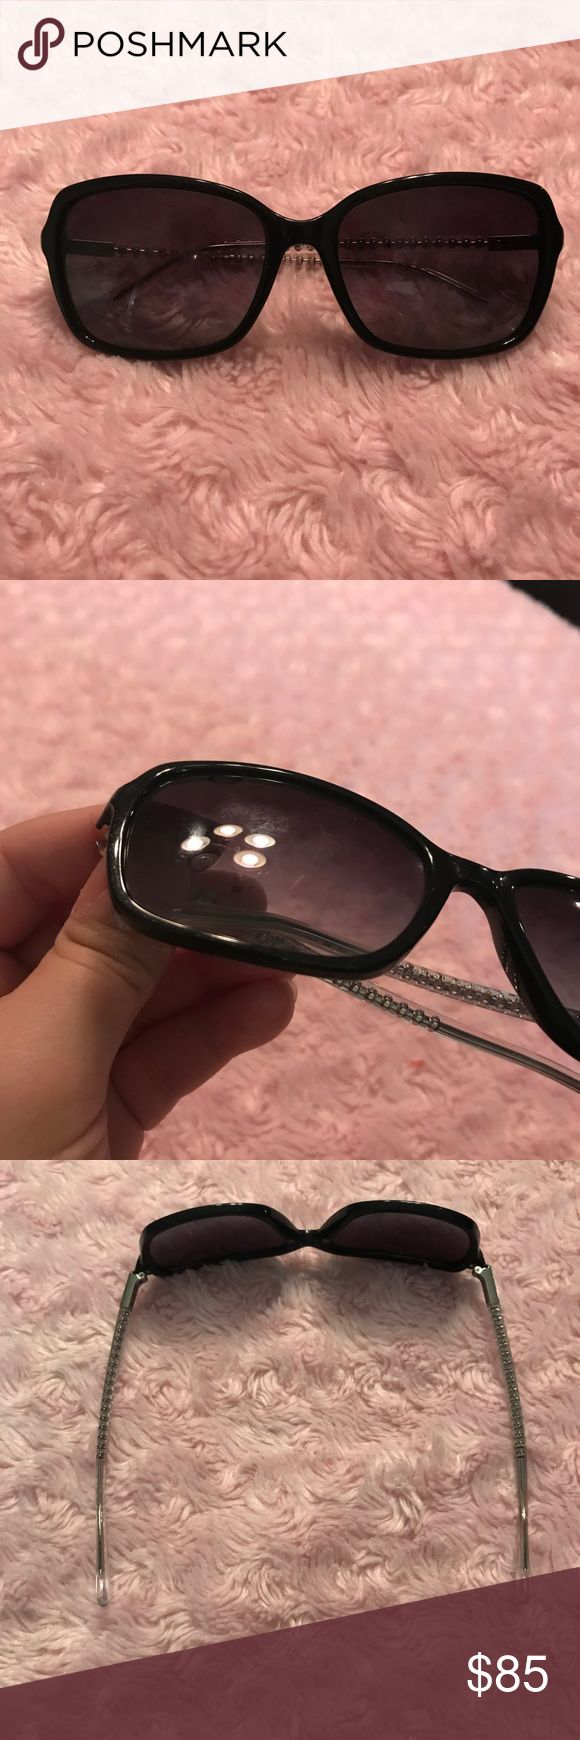 Coach Sunglasses Coach sunglasses. Worn 3 or 4 times, look brand new. A couple faint scratches on one lens.  Might need to get them adjusted to fit they are open a little wide but can do that at any eye glass store. These were purchased at a eye glass store so could be used for prescription glasses Coach Accessories Sunglasses